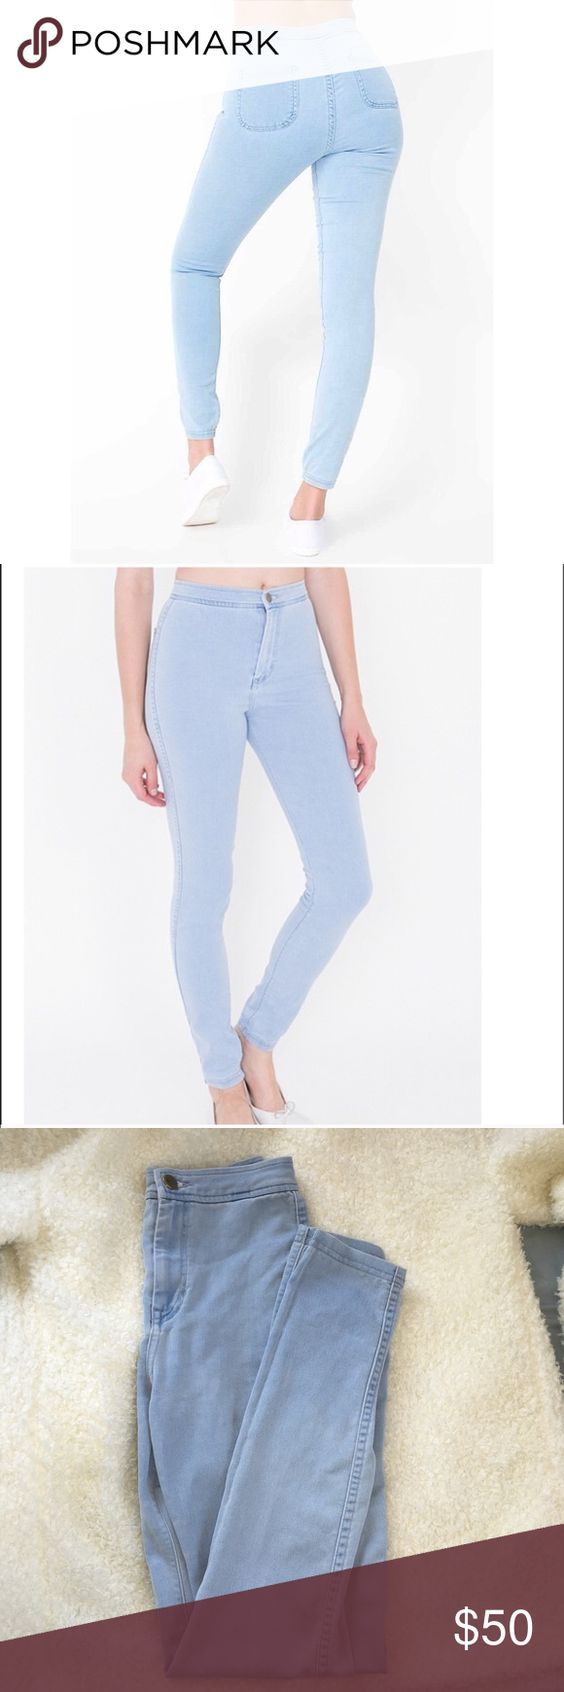 American Apparel Easy Jeans Size Small . I ALSO HAVE A LARGE, I can sell either or. Same color as small. Fits a 26-27. Most selling item at AA . Stretchy high waisted pants in the color or medium stone wash indigo. Has a great fit, and it's SO cute, I just didn't wear it much because Its rare when I wear high waist jeans. Offers accepted through the offer button only:) American Apparel Jeans Skinny